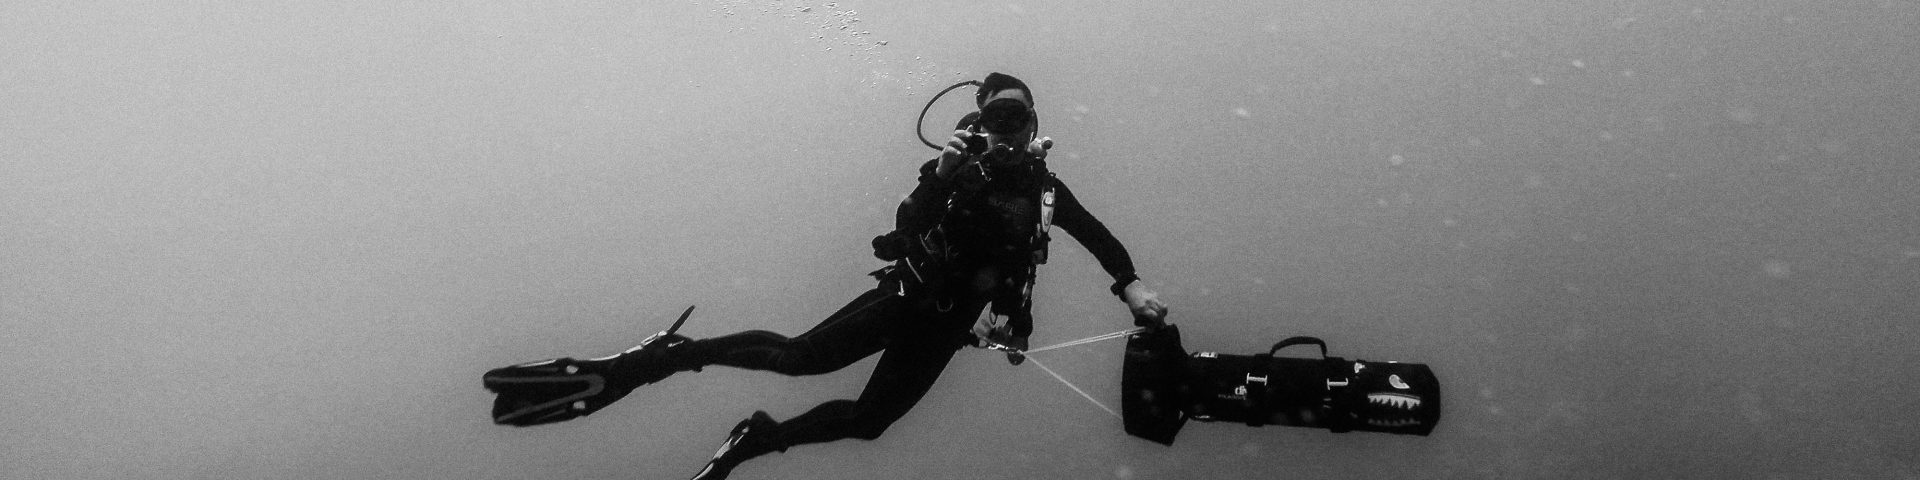 black and white underwater image of a scientist doing field work